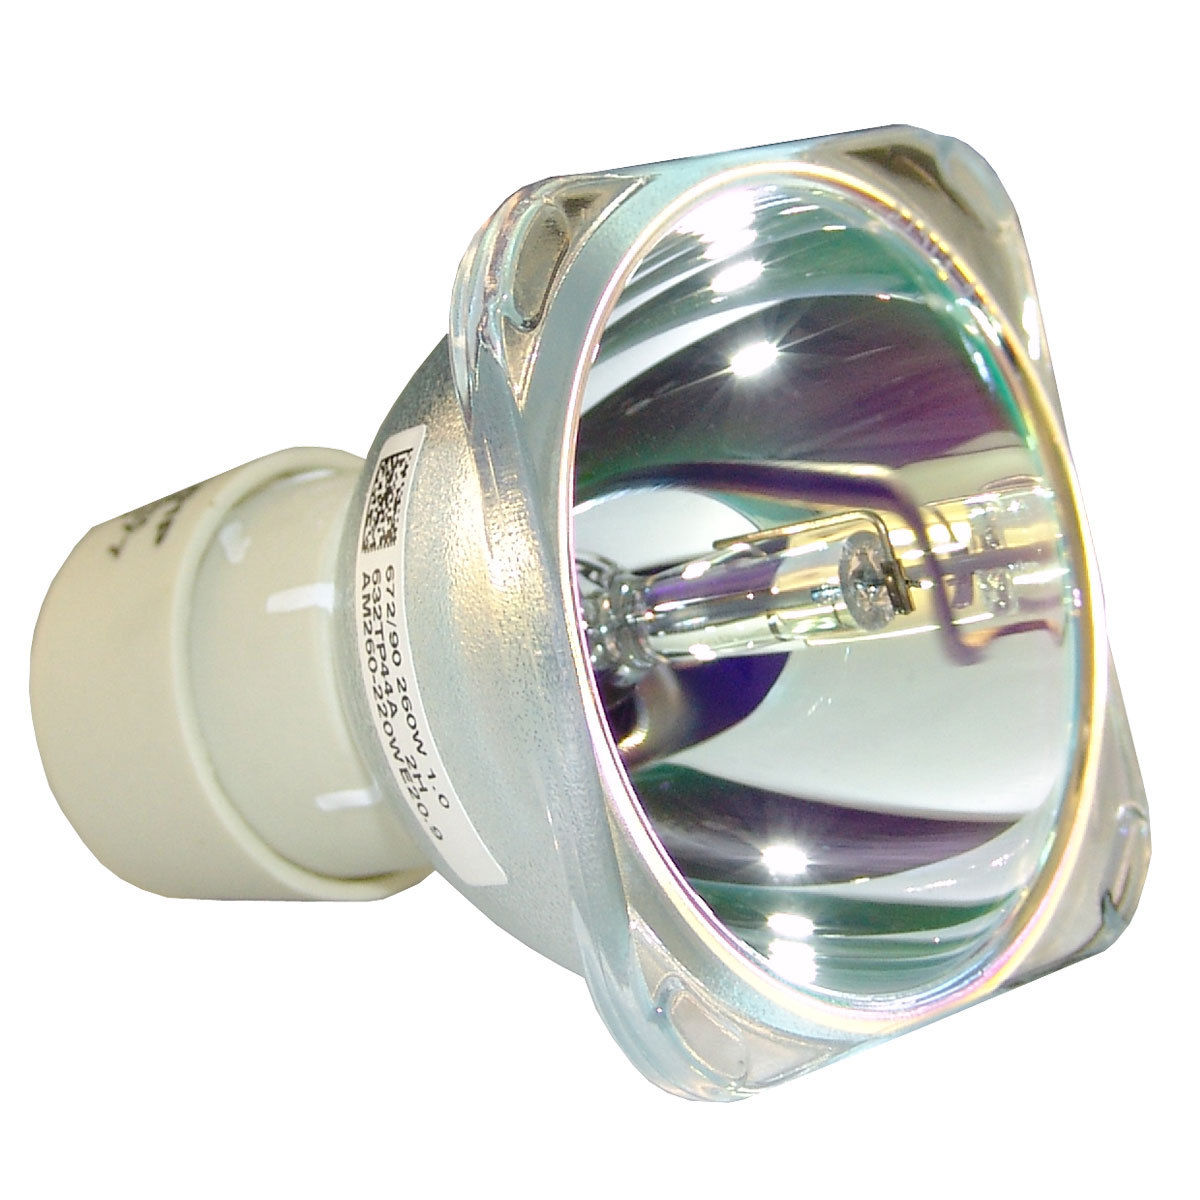 Compatible Bare Bulb NP30LP NP-30LP for NEC M332XS M352WS M402X Projector Lamp Bulb without housing монитор nec 30 multisync pa302w sv2 pa302w sv2